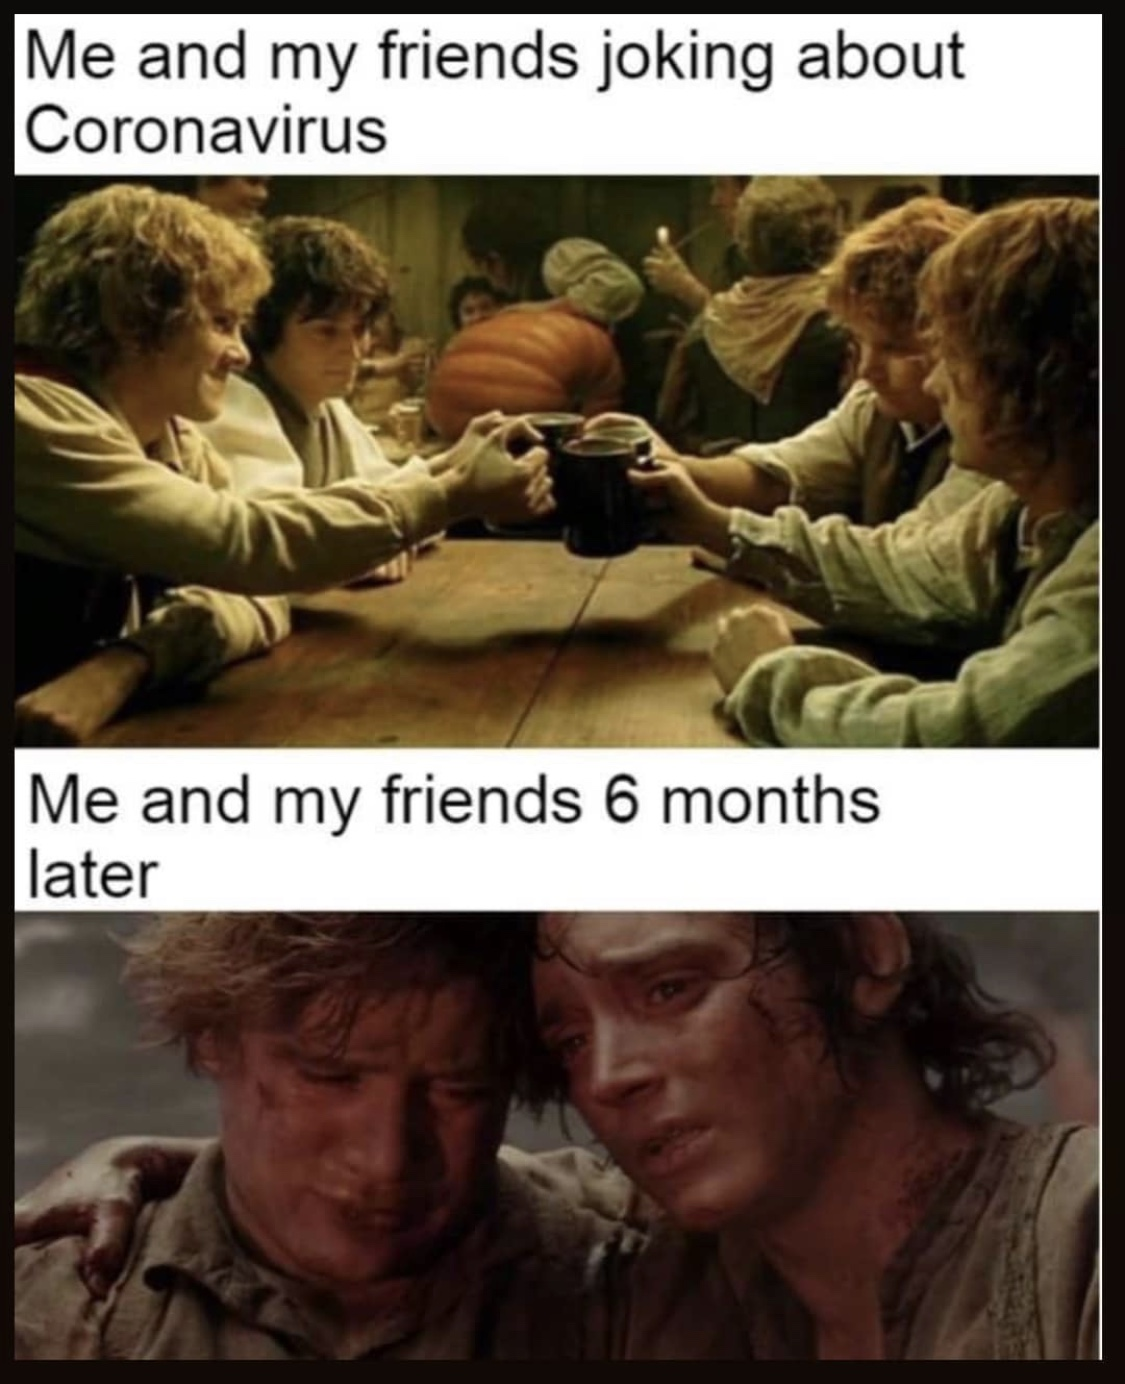 Me and my friends joking about coronavirus – me and my friends 6 months later